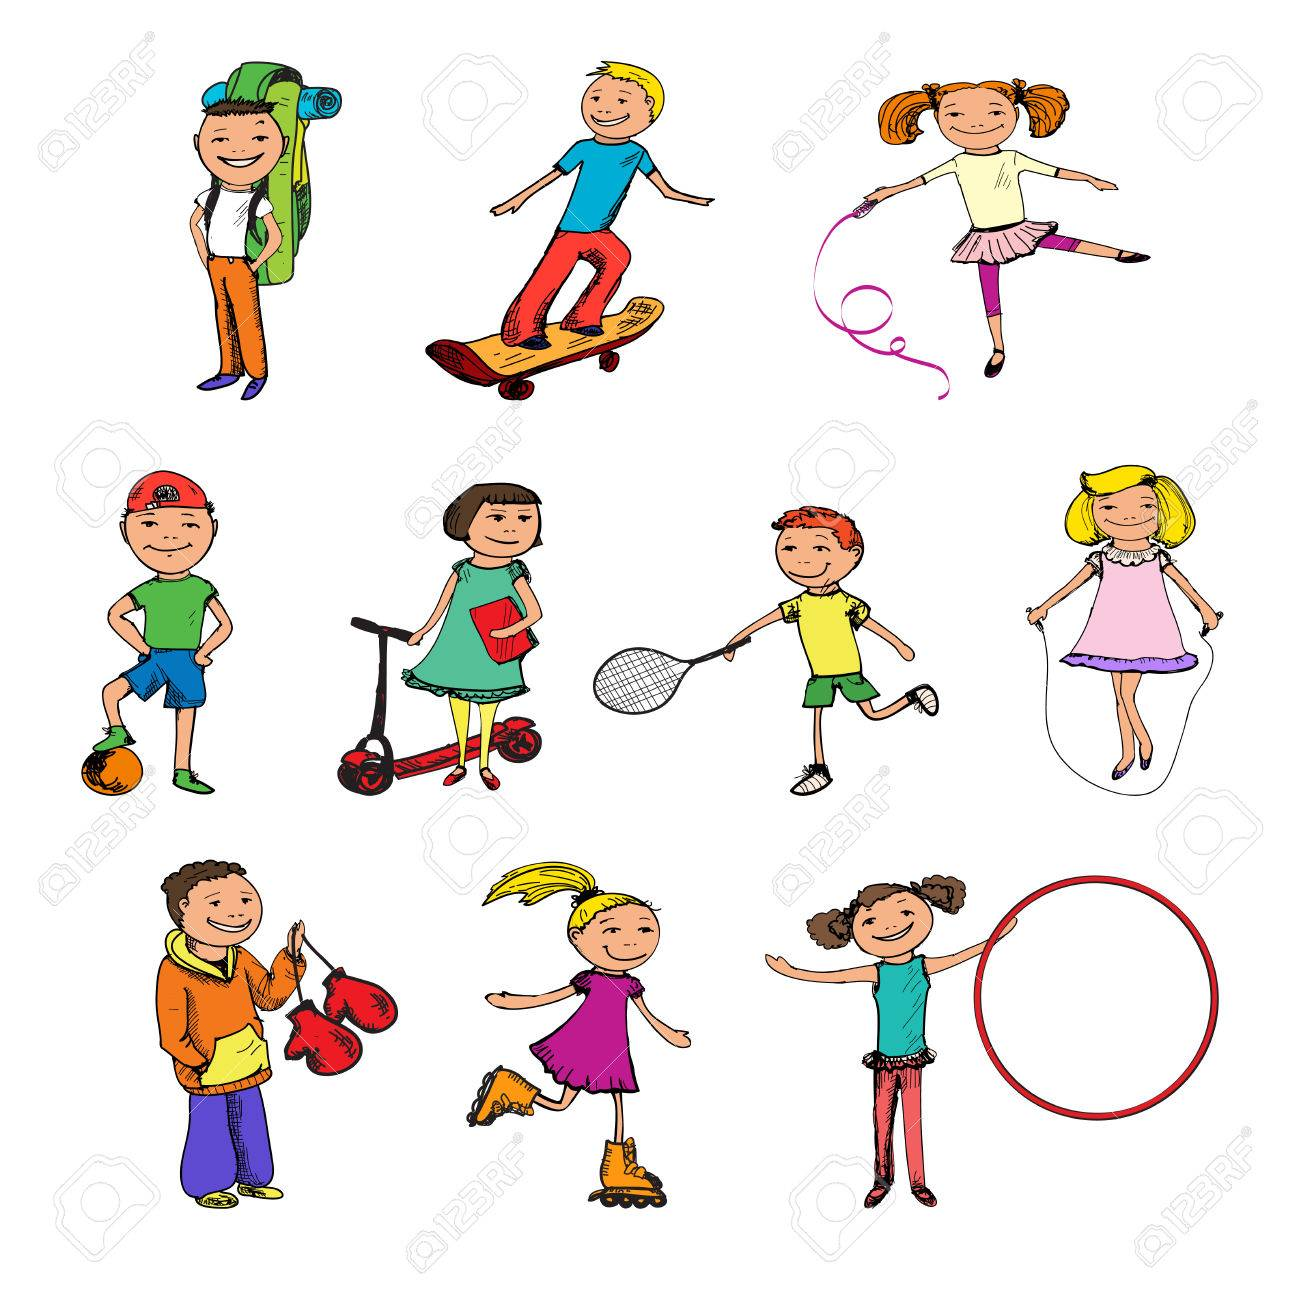 Children Boys And Girls With Ball Tennis Racquet Jumping Rope Sports Colored Sketch Characters Set Isolated